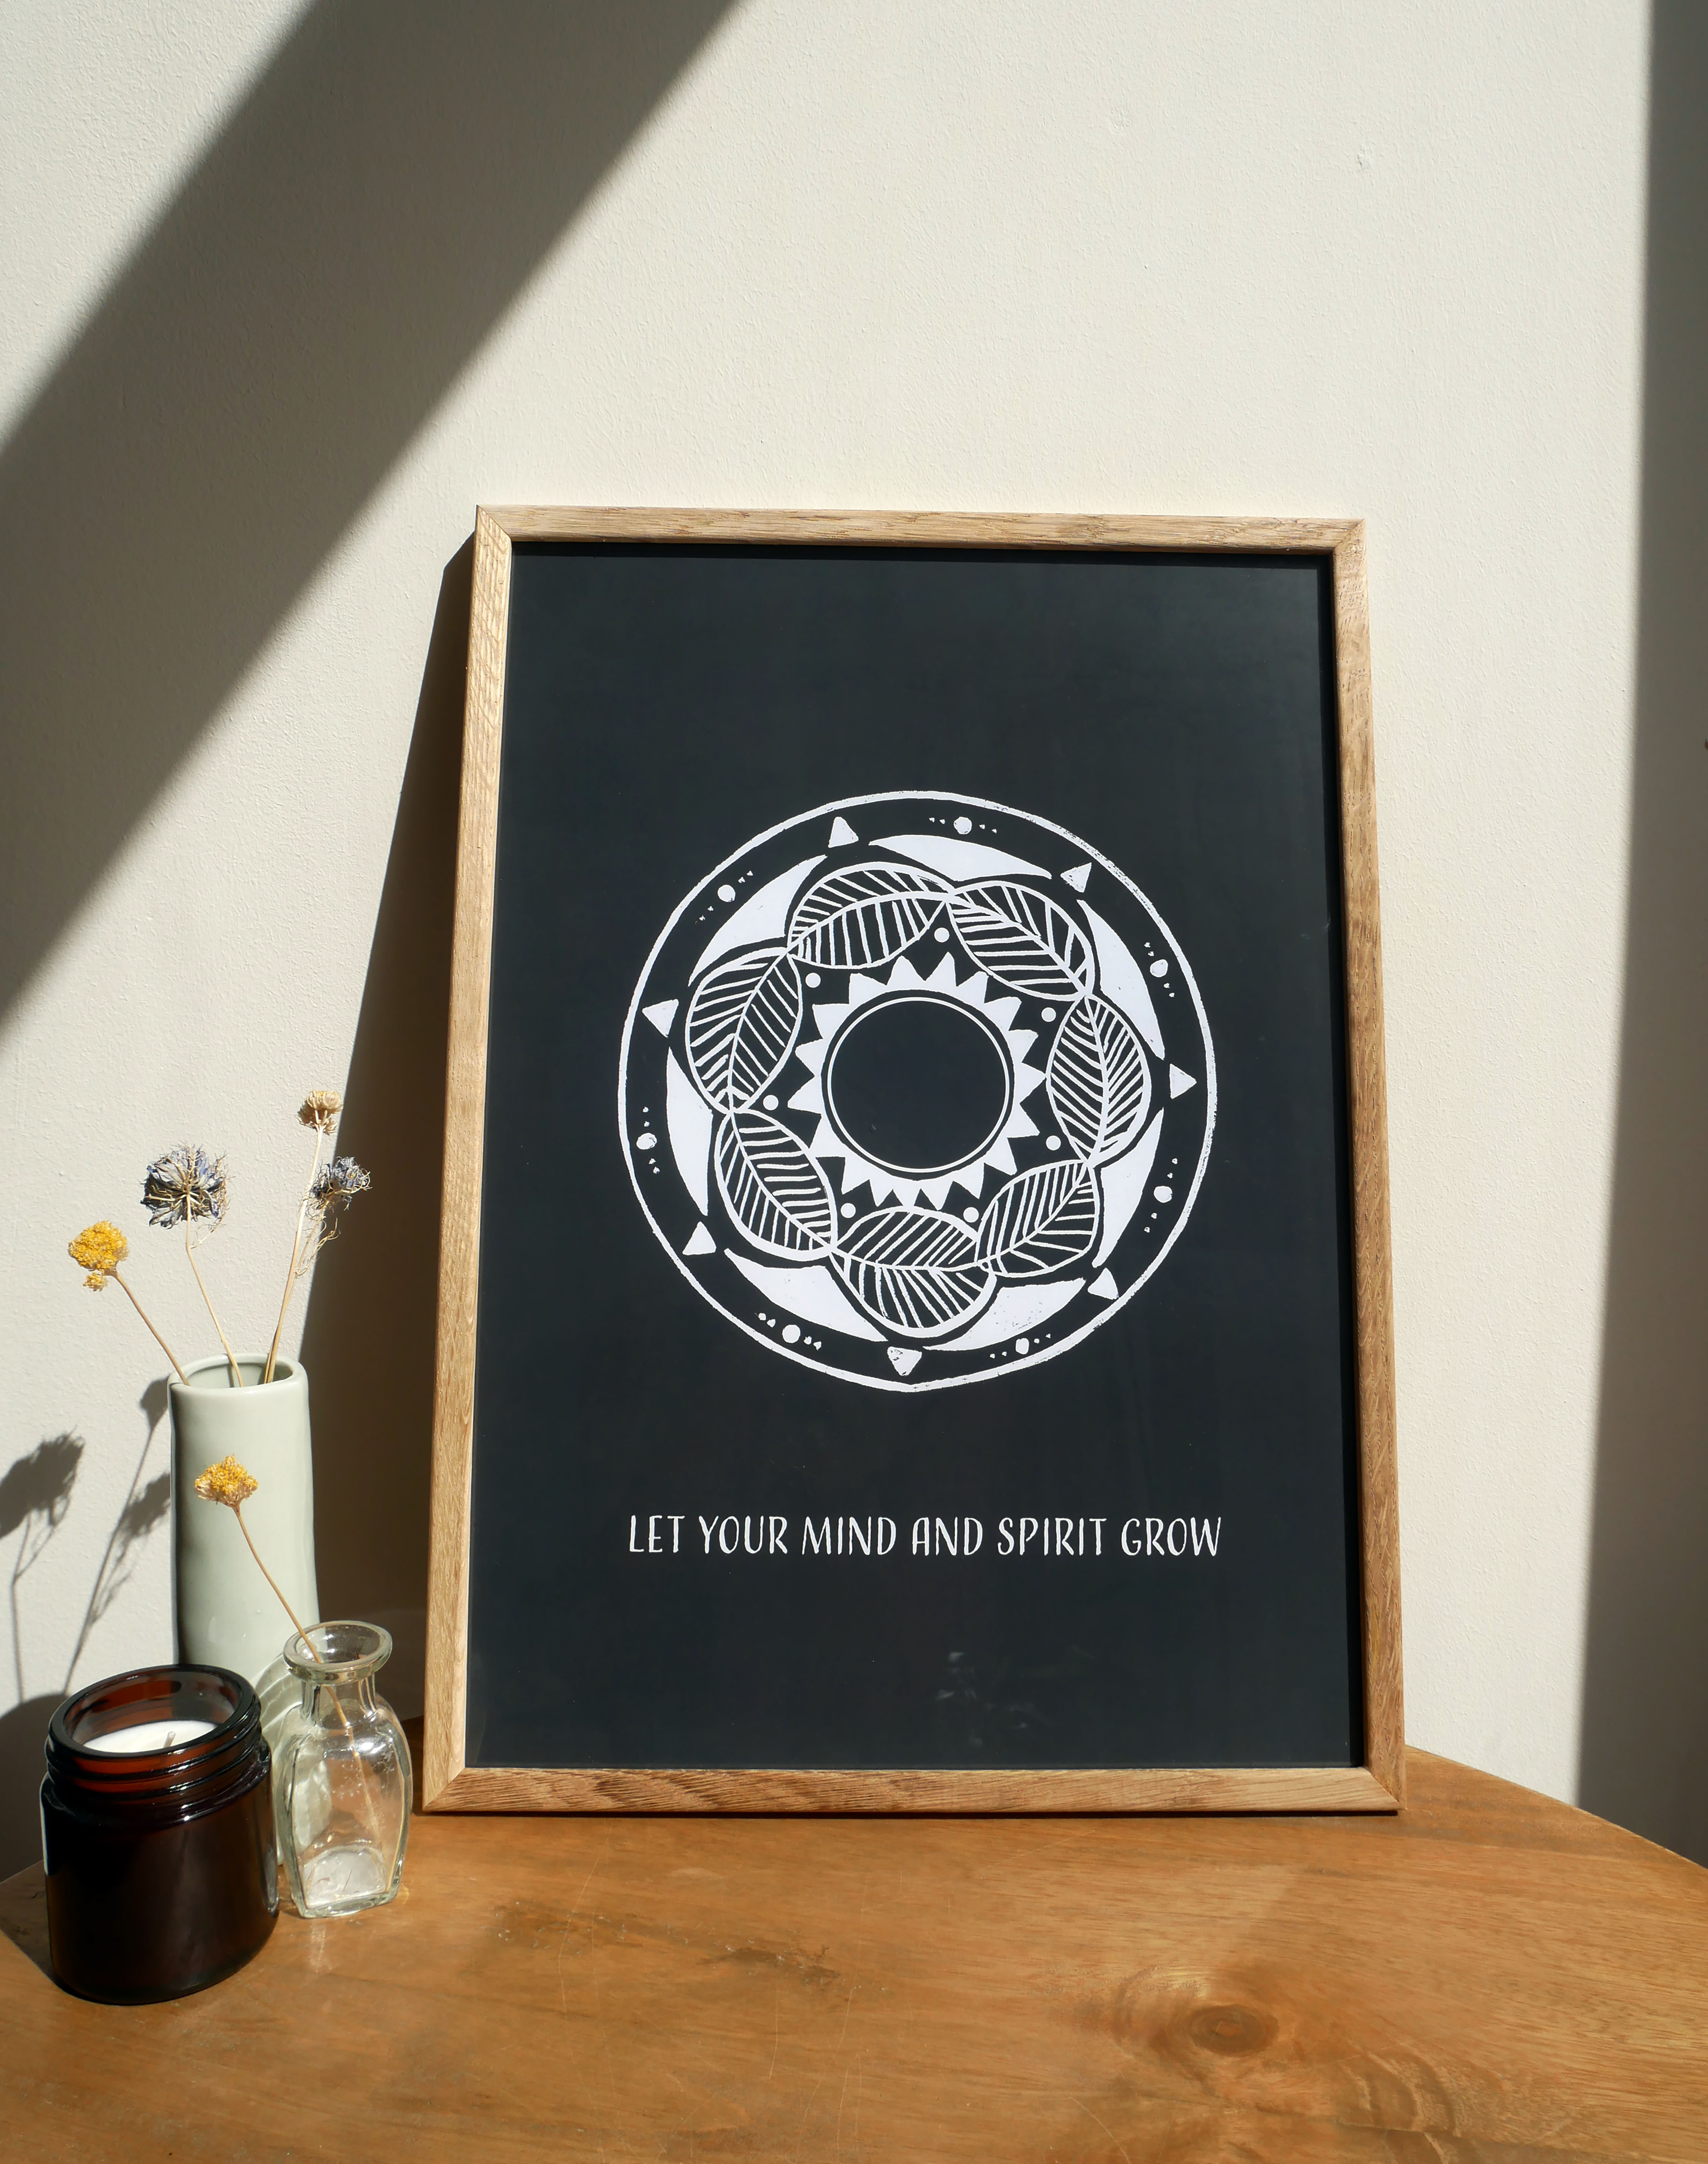 Mandala-style poster in a wooden frame